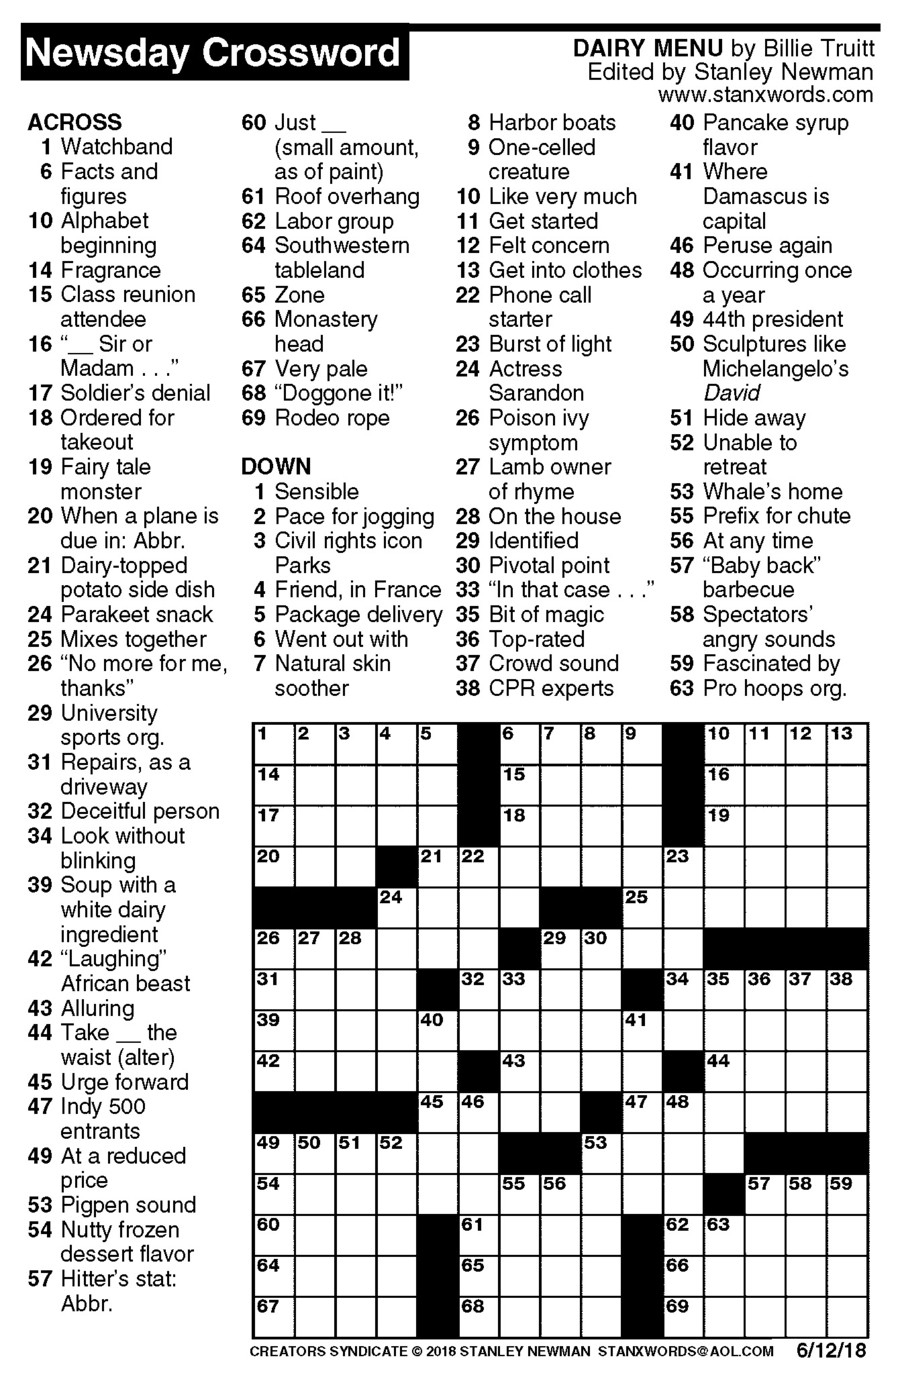 Newsday Crossword Puzzle For Jun 12, 2018,stanley Newman - Printable Crossword Puzzles Newsday